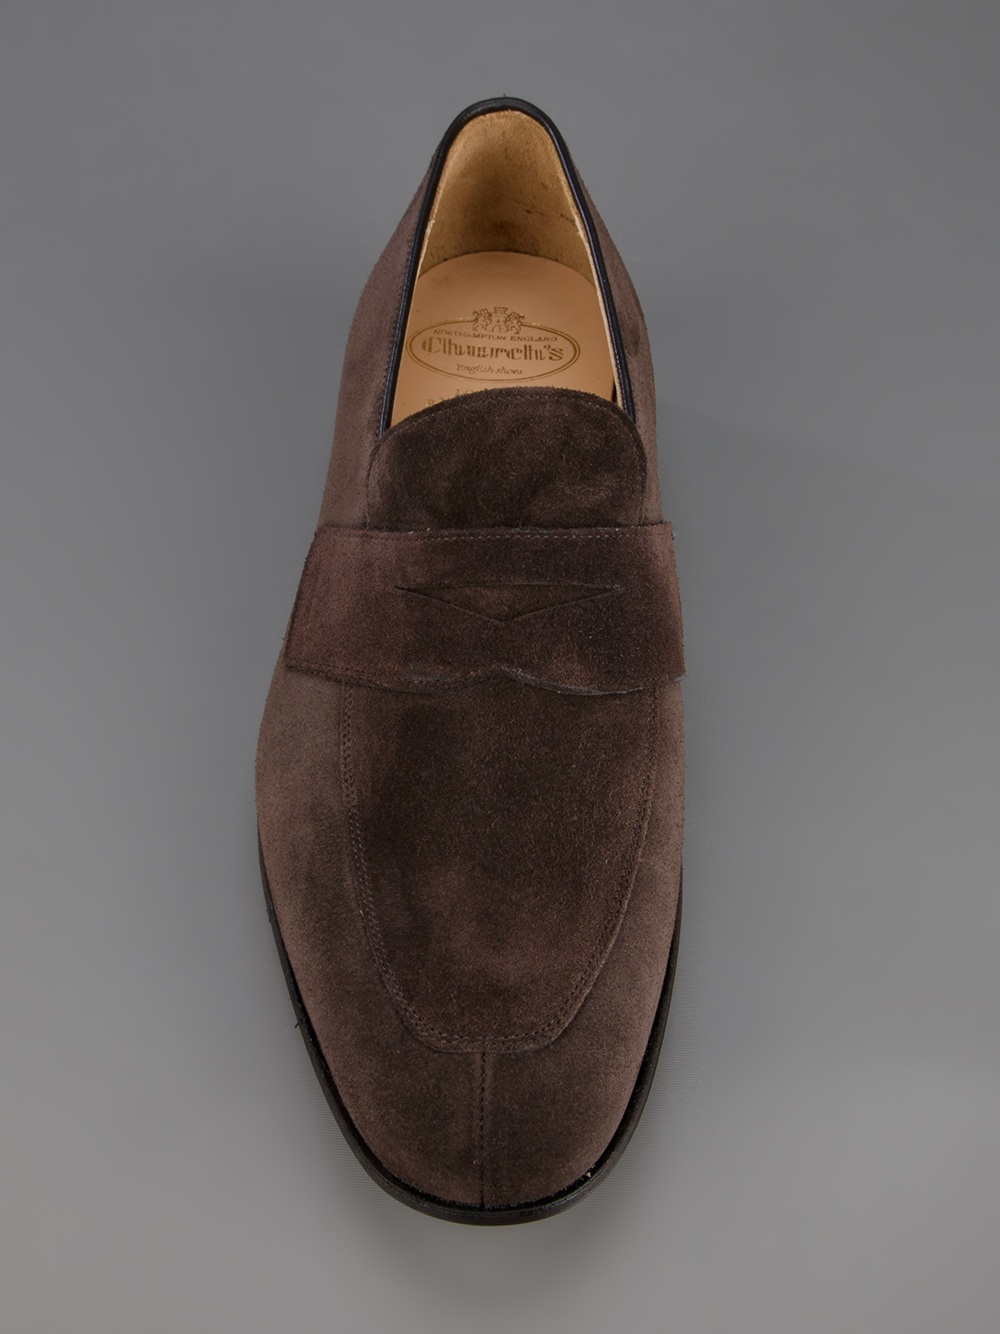 Church's Hayes Moccasin Shoe in Brown for Men